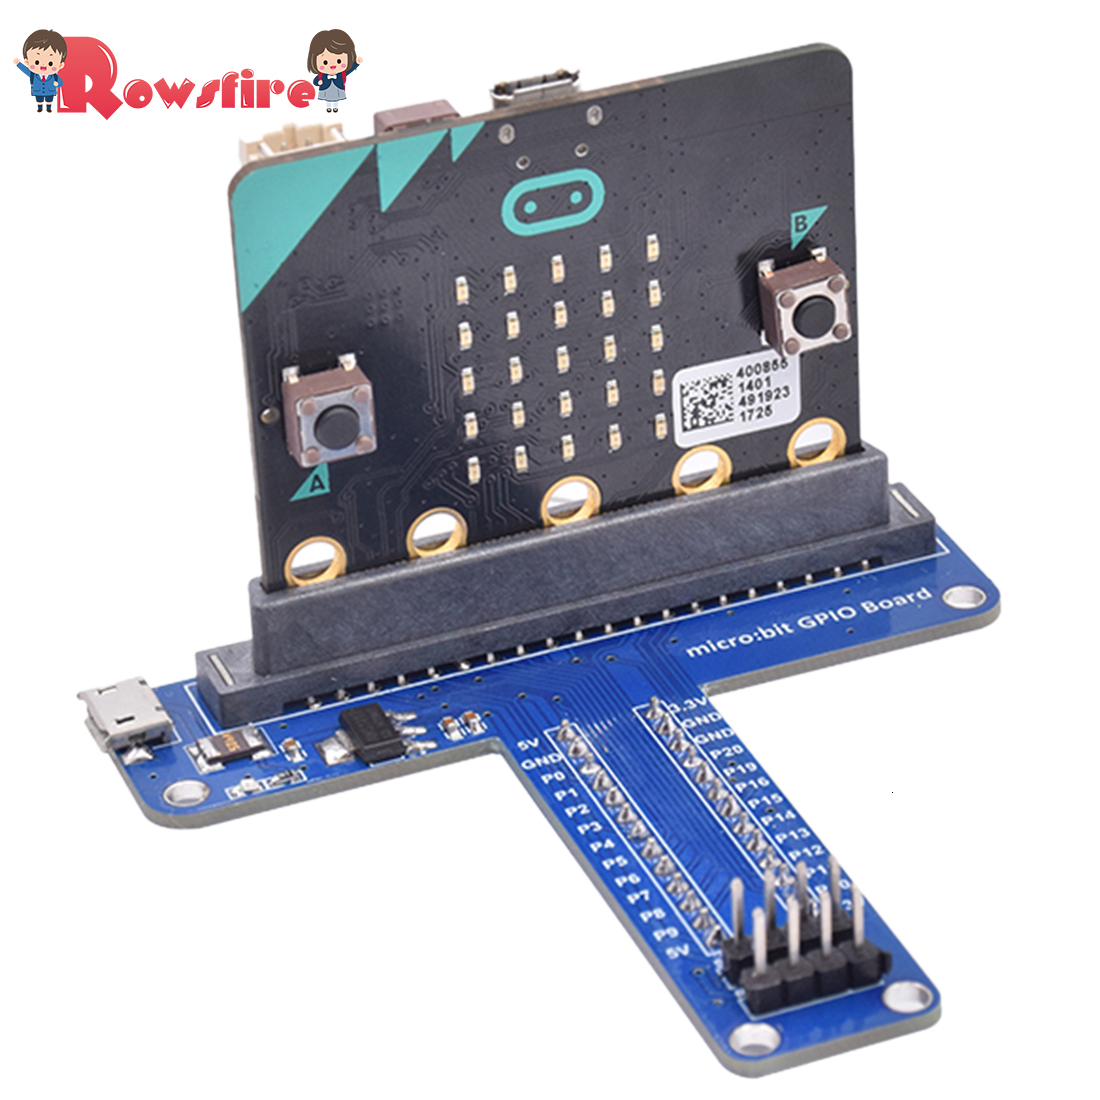 2019 New Hot Python Programming Maker Education Micro:Bit T Shape Development Board Expansion Board